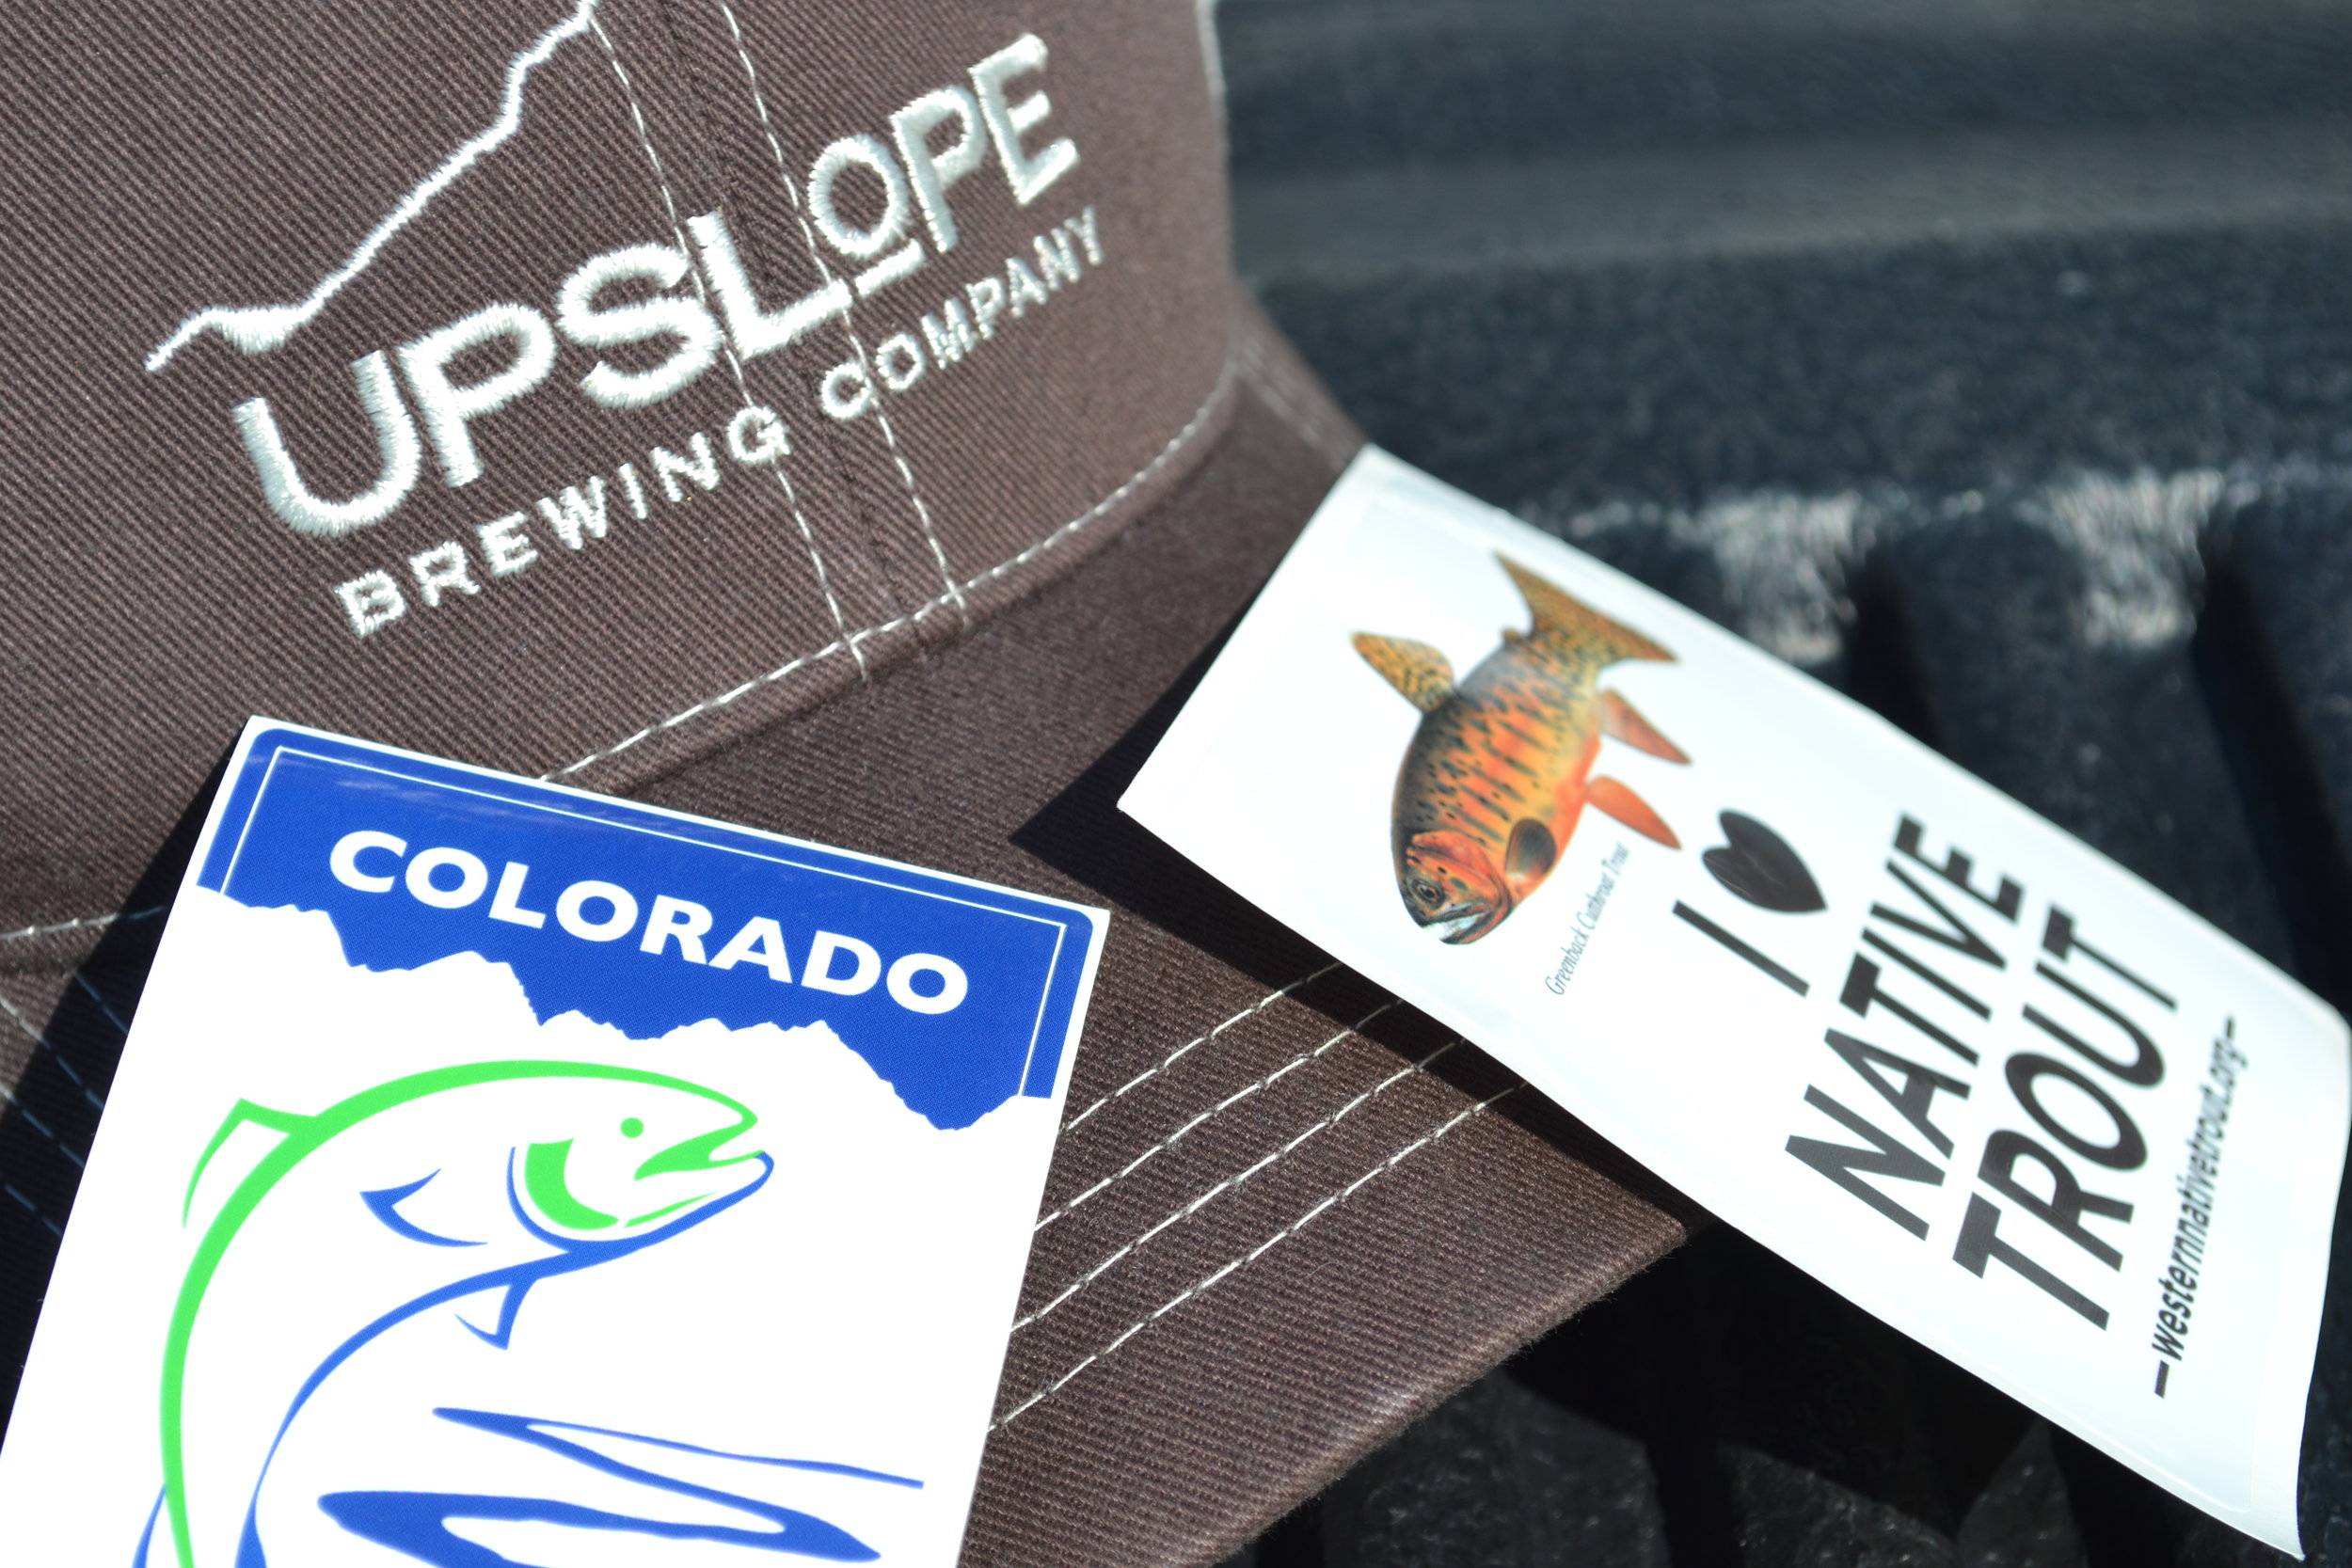 Pictured: UpslopeBrewing Co., Western Native Trout Initiative, and Colorado Trout Unlimited.